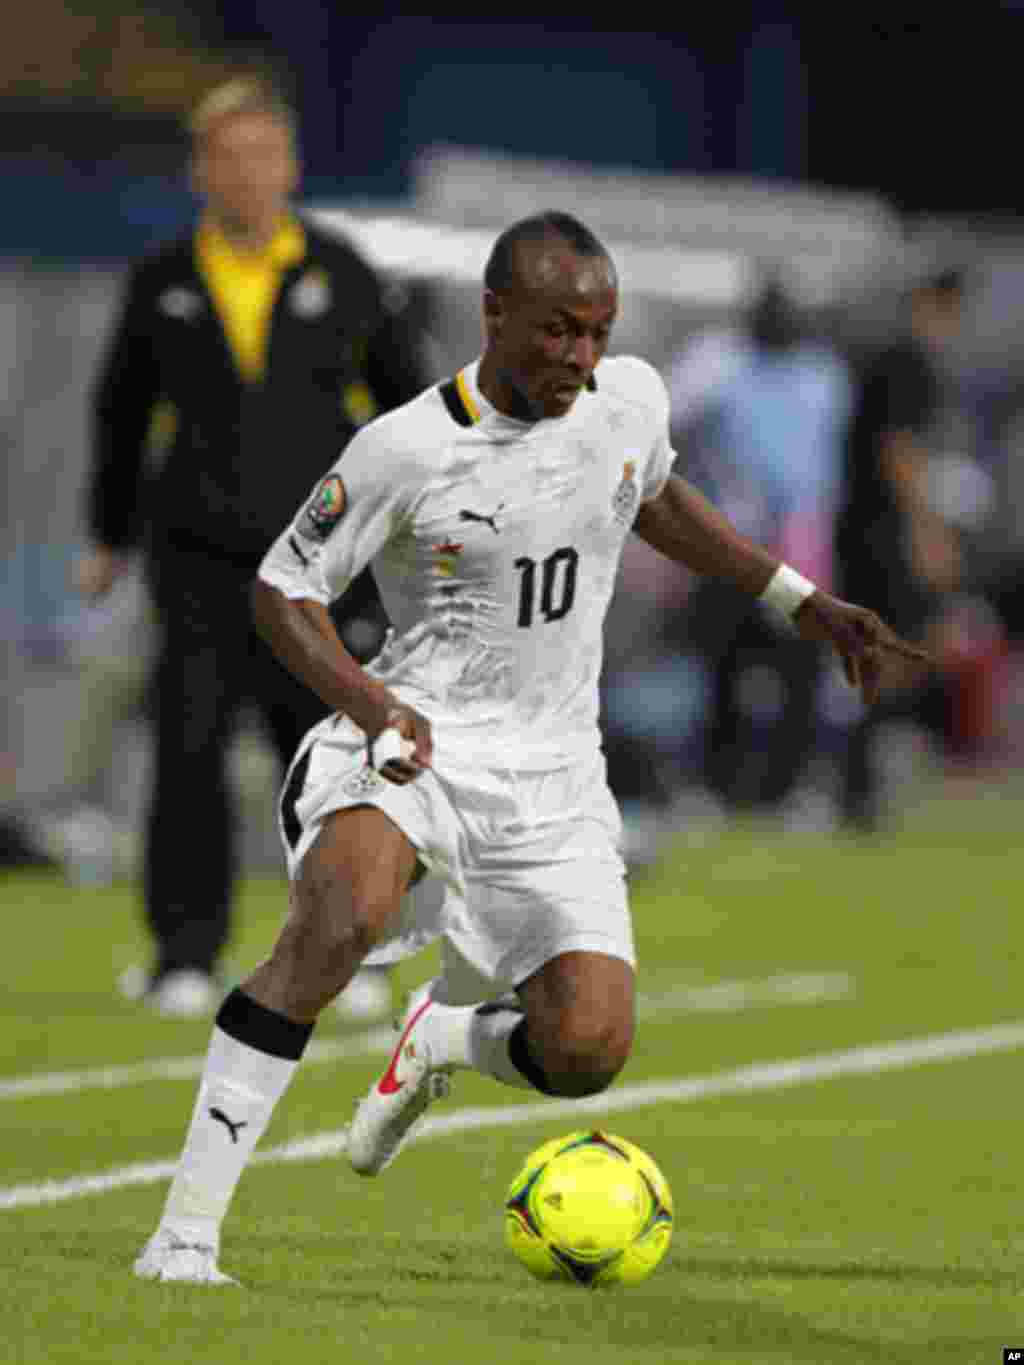 Ghana's Andre Ayew runs with the ball during their African Cup of Nations Group D soccer match against Botswana in FranceVille Stadium January 24, 2012.